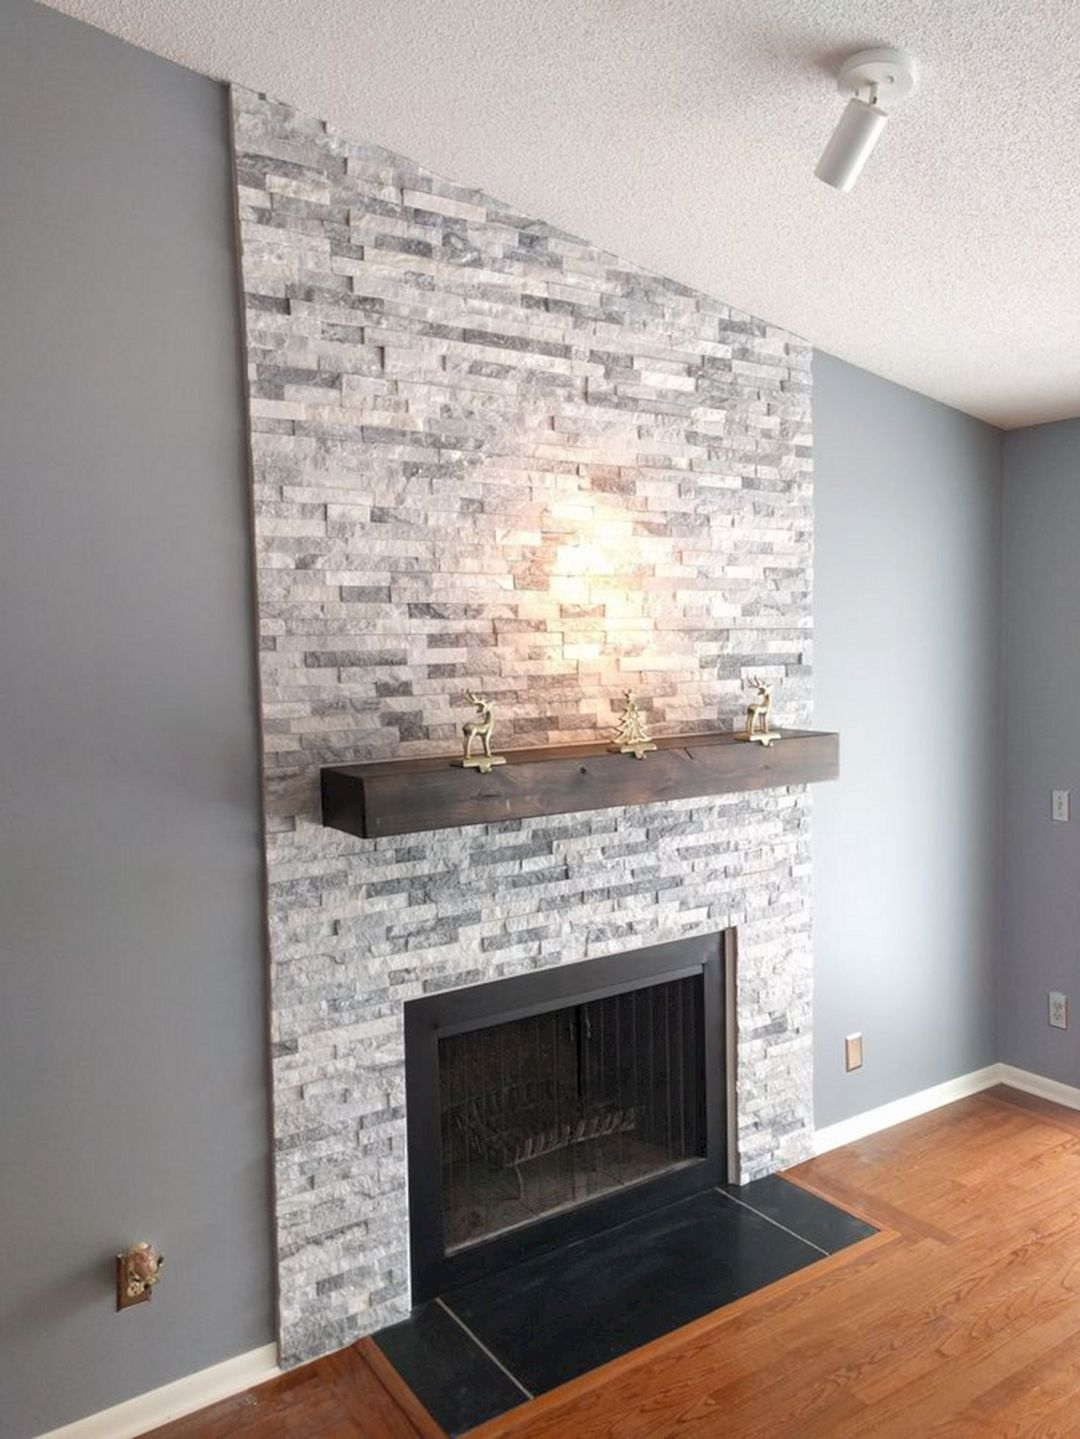 27+ Stunning Fireplace Tile Ideas for your Home | Pinterest | Mosaic ...